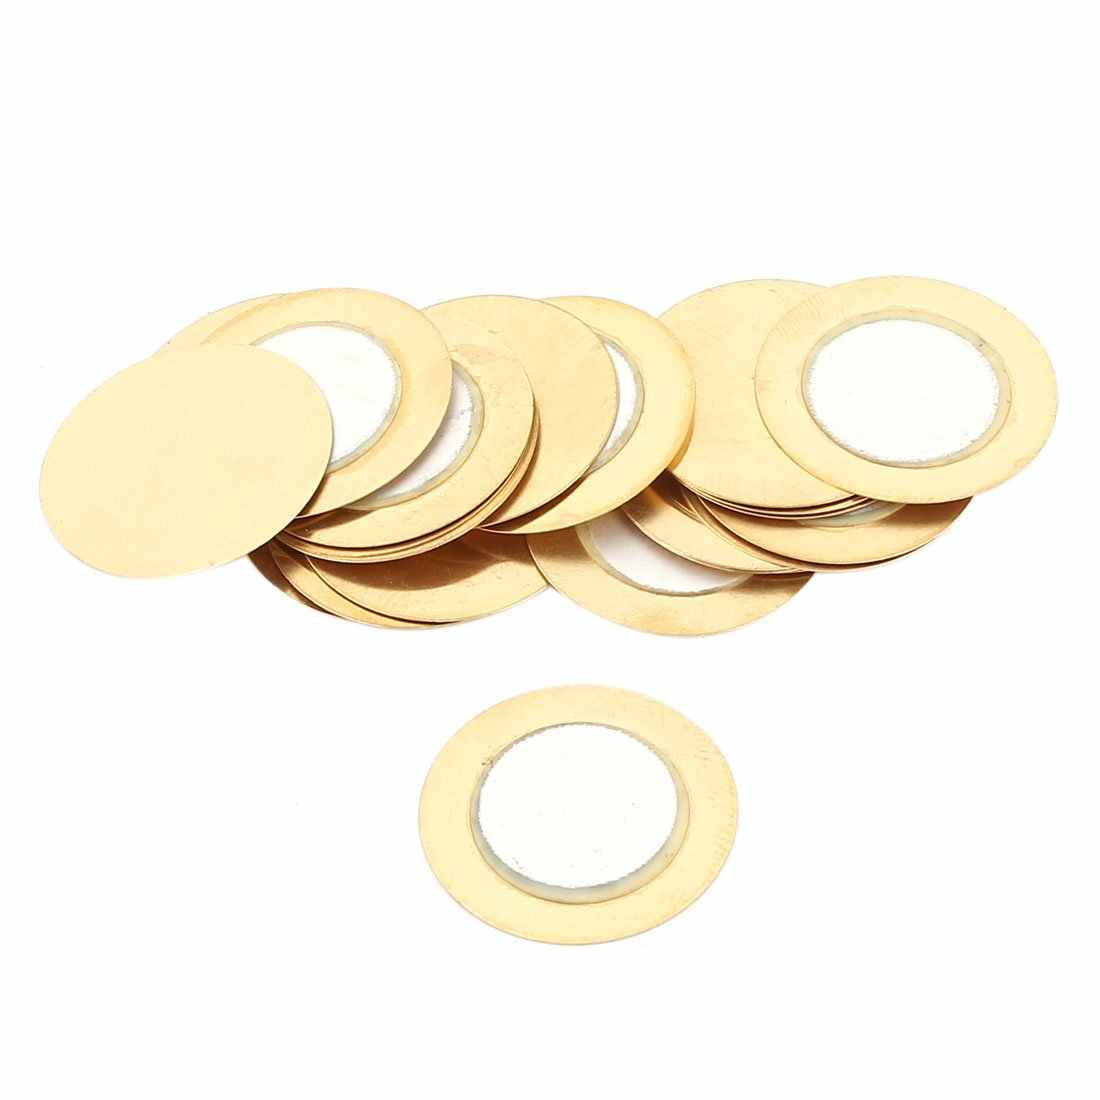 20pcs/Lot 35mm Piezoelectric Piezo Ceramic Wafer Plate Buzzer Loudspeaker Dia For Arduino Diy Electronic Piezo Buzzers